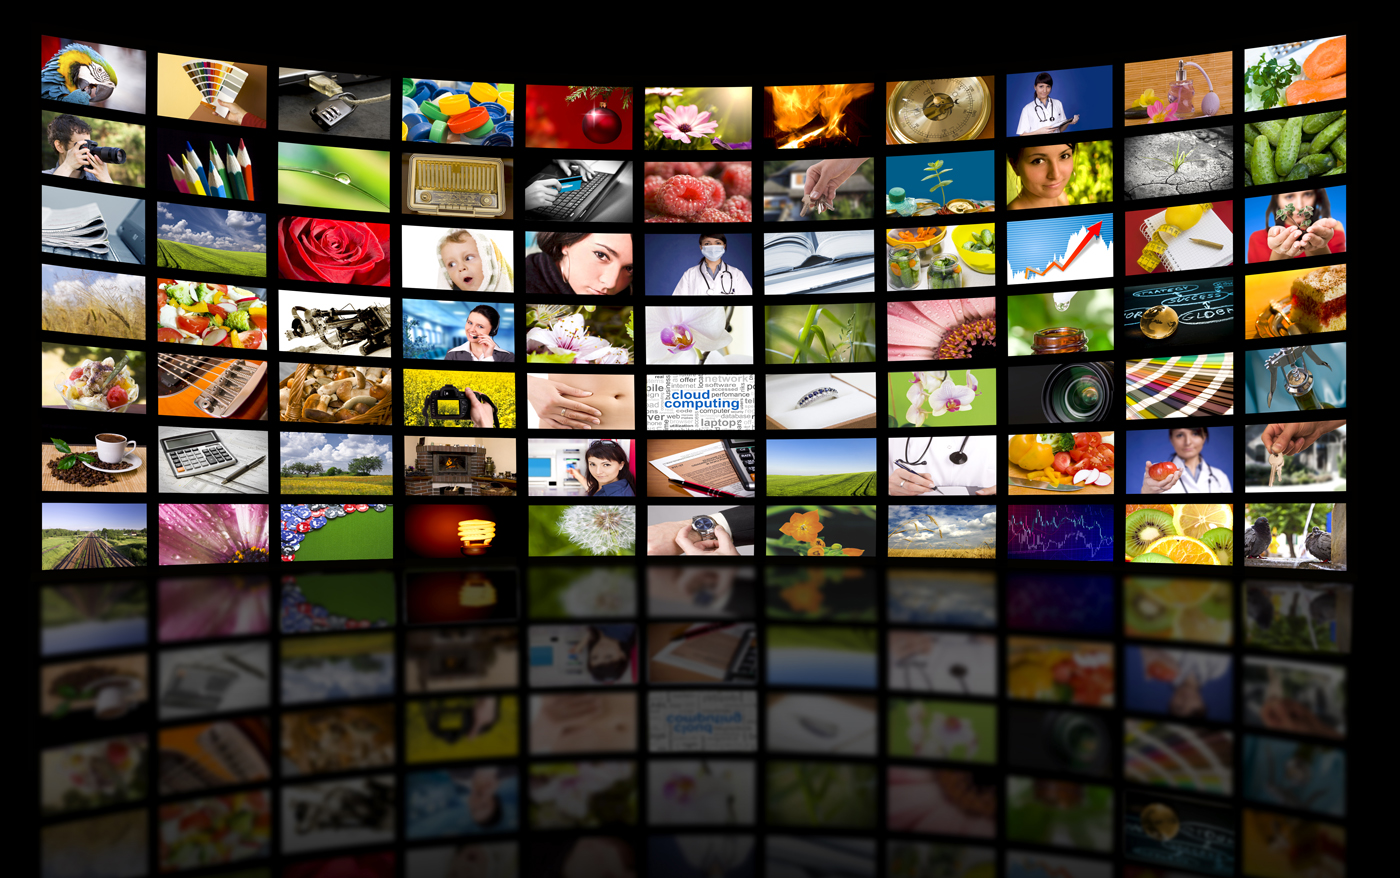 This image shows a great number of different screens before a black background. It expresses a great variety of video technologies.